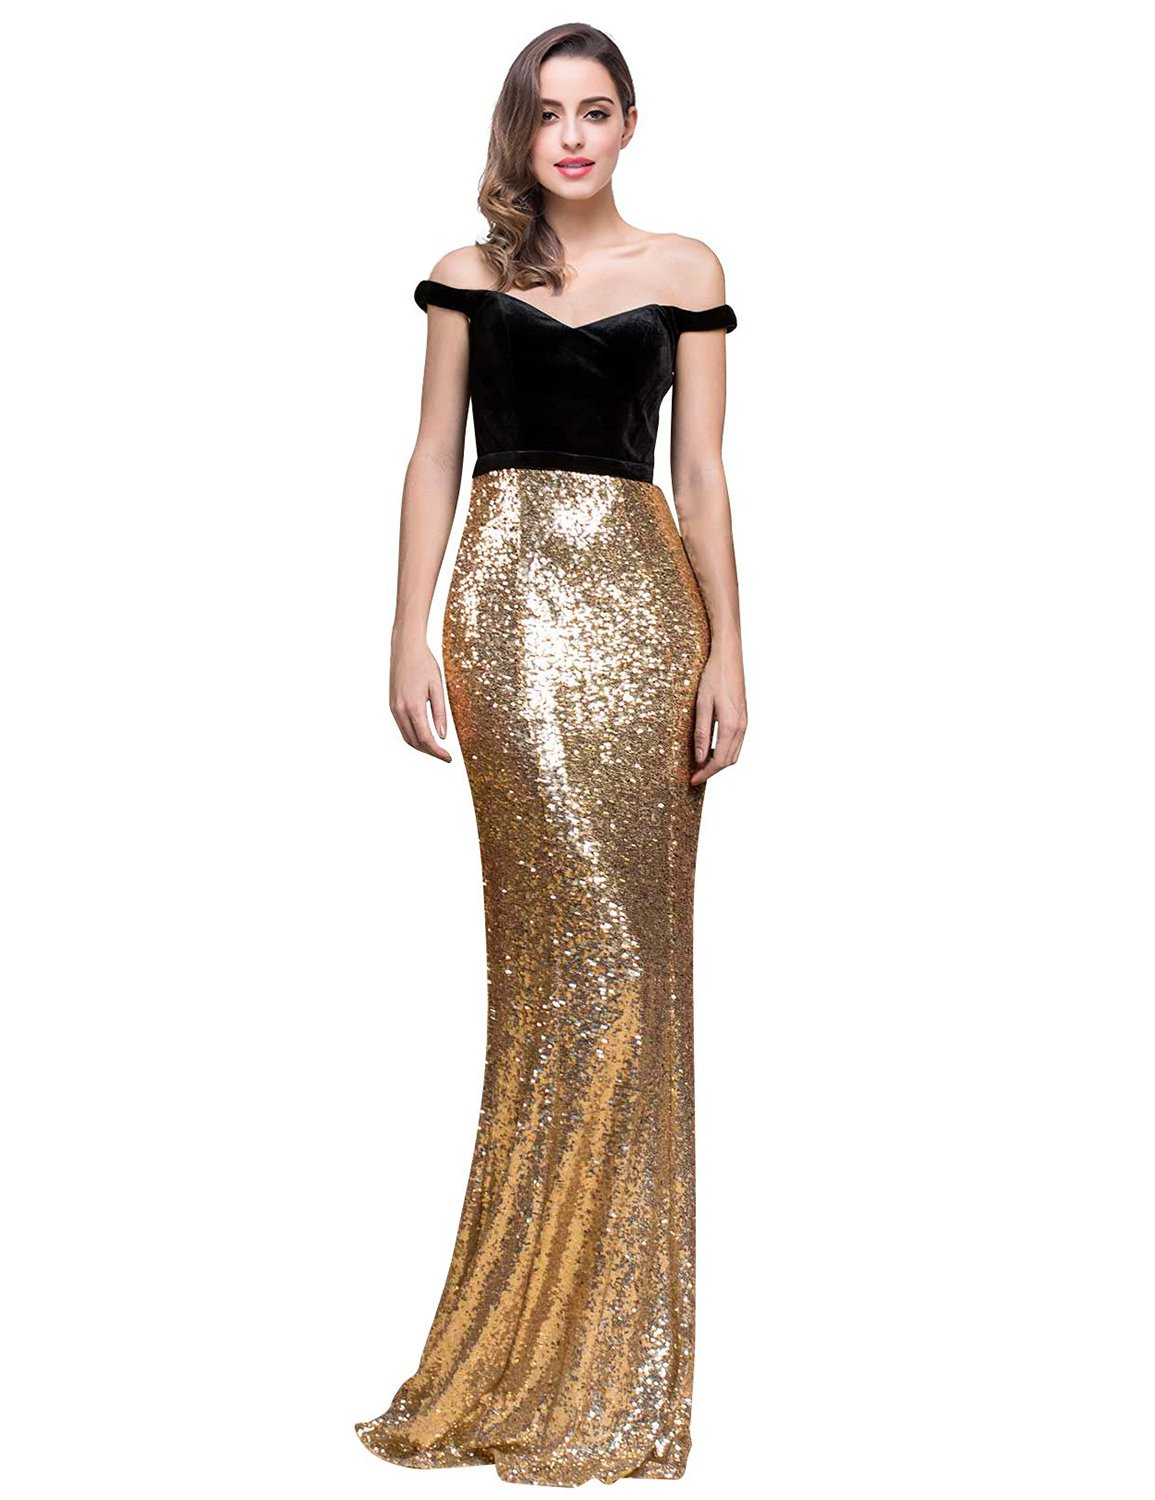 Off Shoulder Long Prom Dress Plus Size Long Evening Gown For Women A Line  Party Robes Sweep Train Formal Celebrity SHPD08 Gold & Black Size 18W